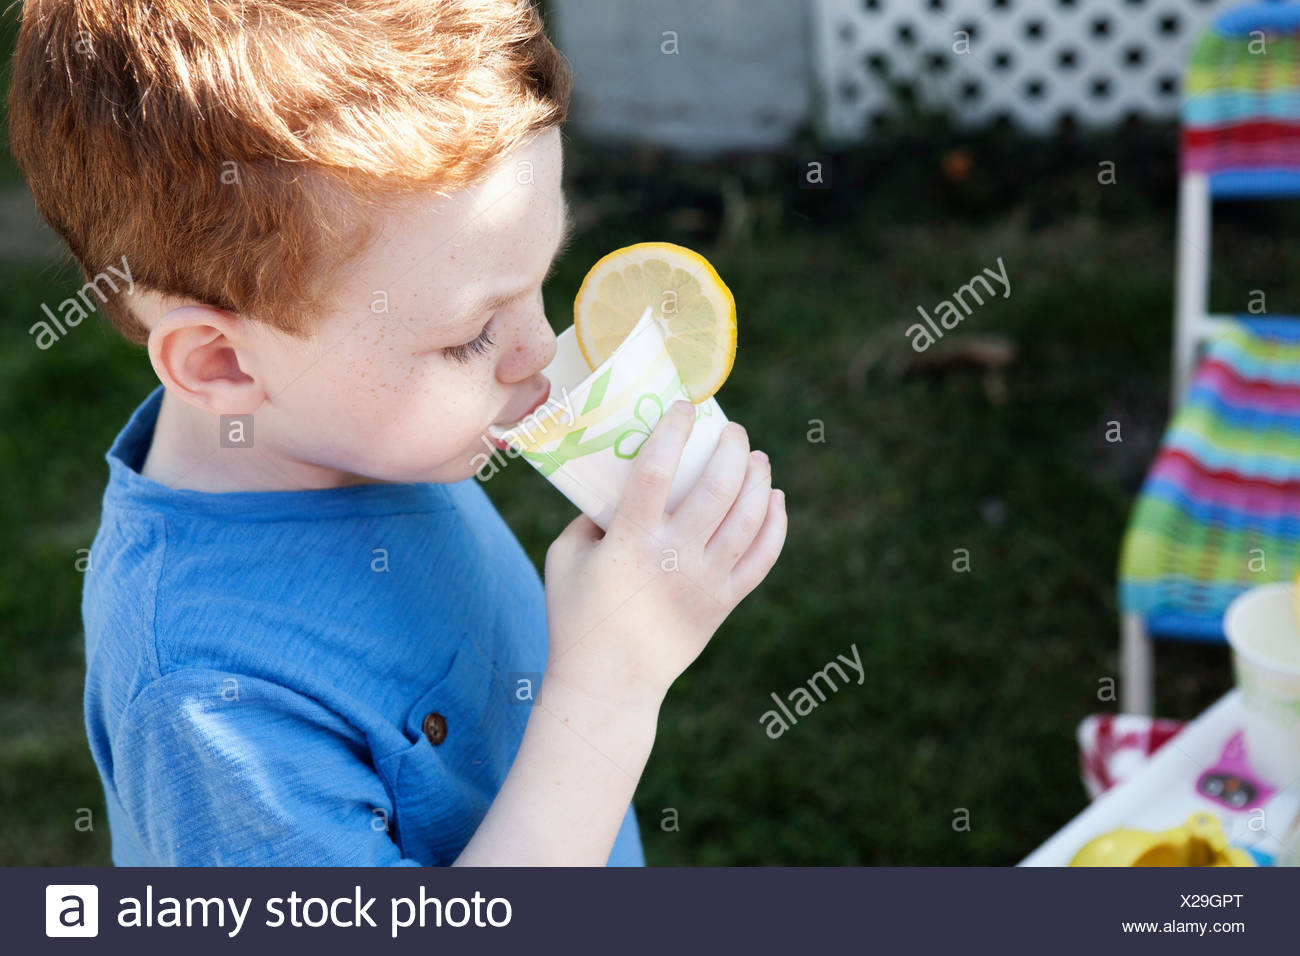 Boy drinking soft drink - Stock Image